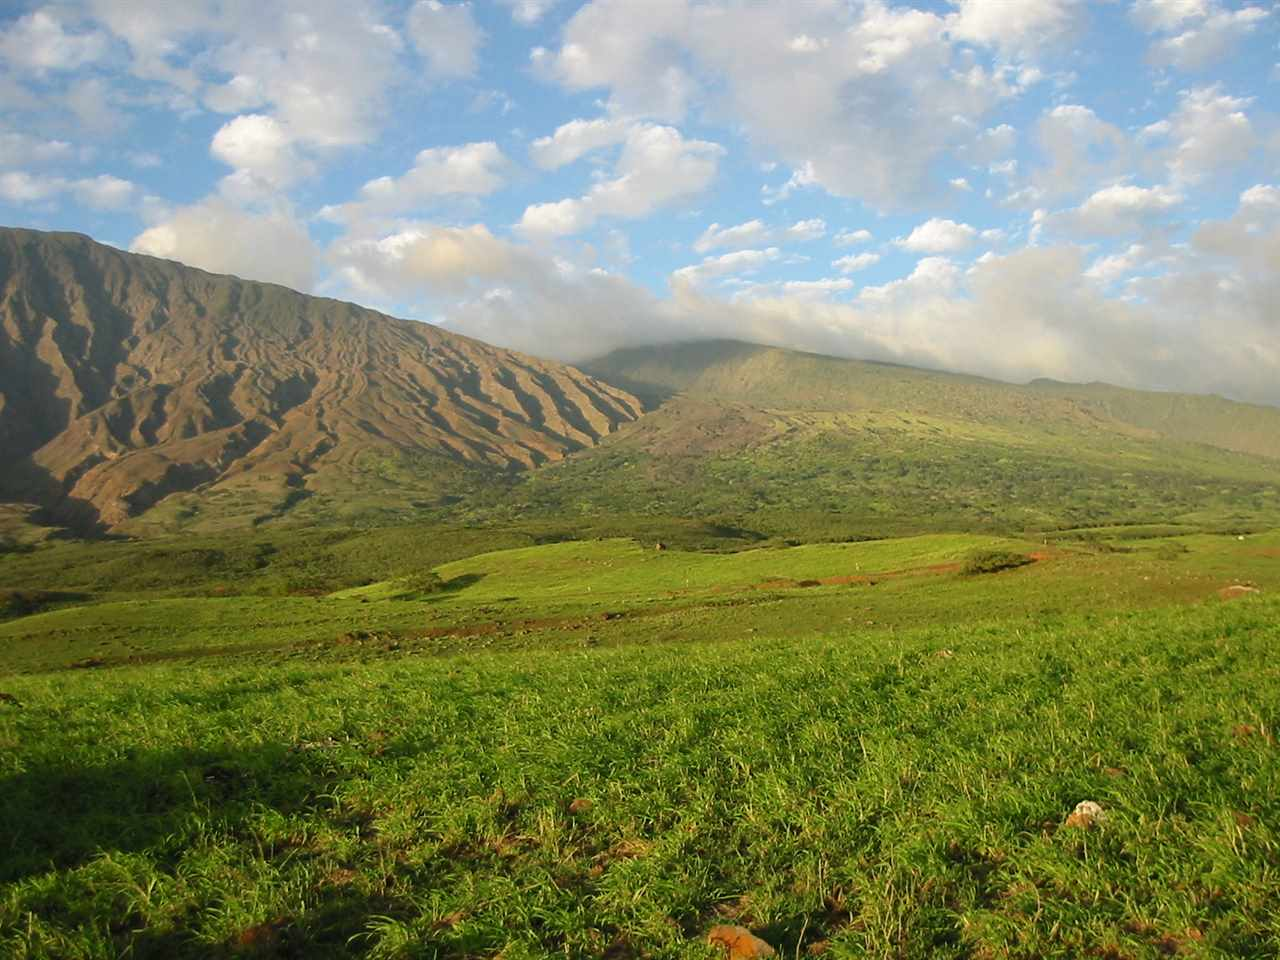 Naholoku, Kaupo. over 3,000 acres of active ranch lands bounded mauka side by Haleakala National Park and makai side by Piilani Highway. Inclusive of infrastructure and improvements. Trophy big game hunting and modest equestrian facilities. Special wilderness.